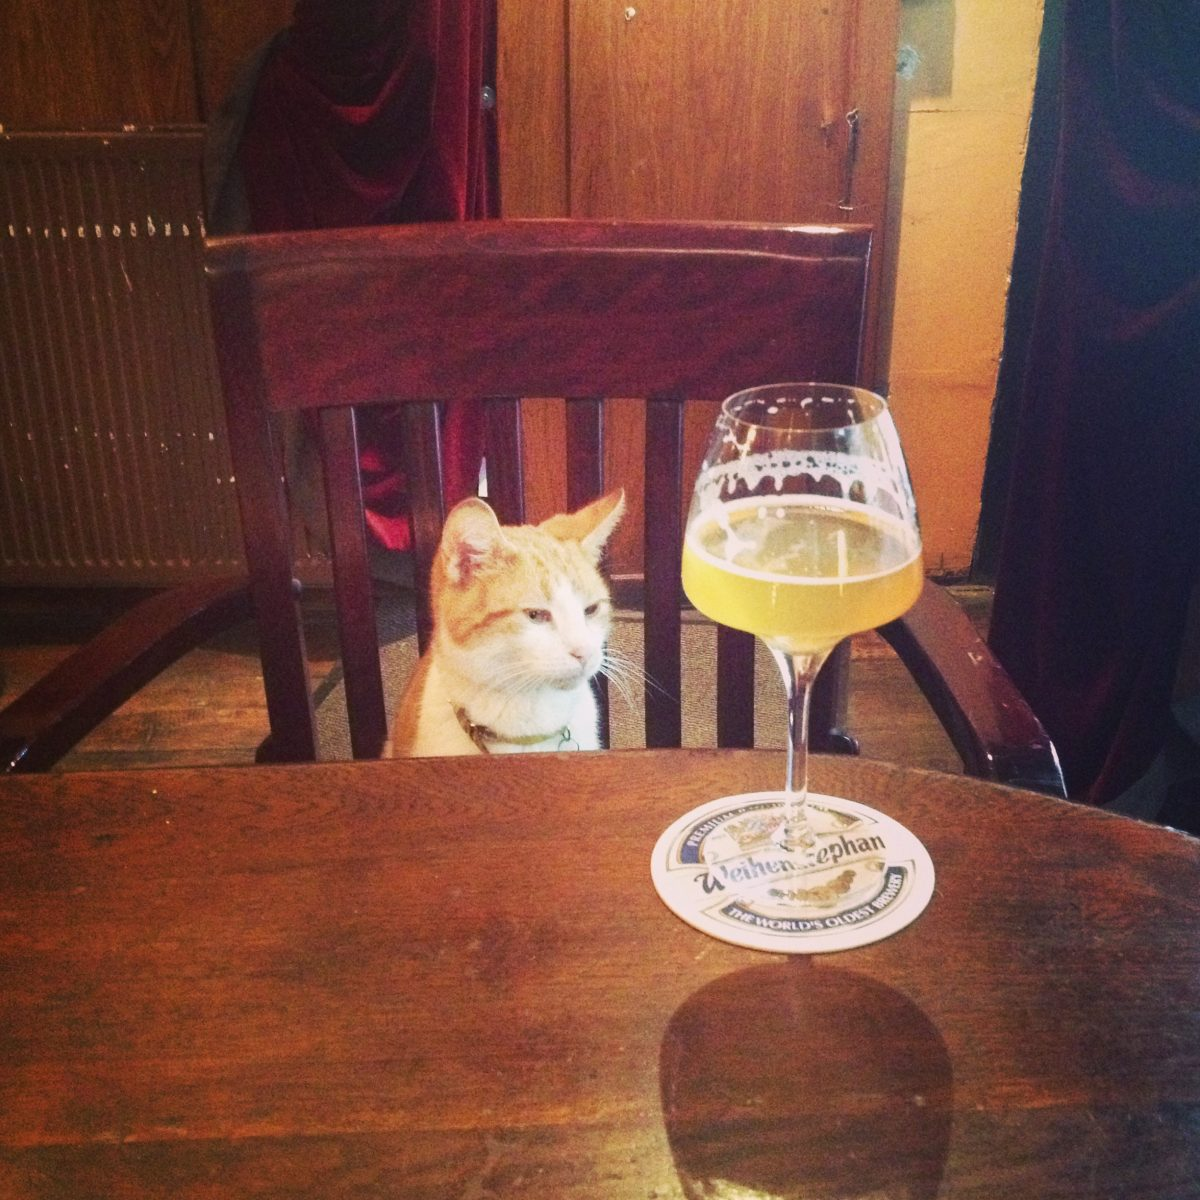 Gollem Amsterdam - a great place for craft beer - even the kitty likes it